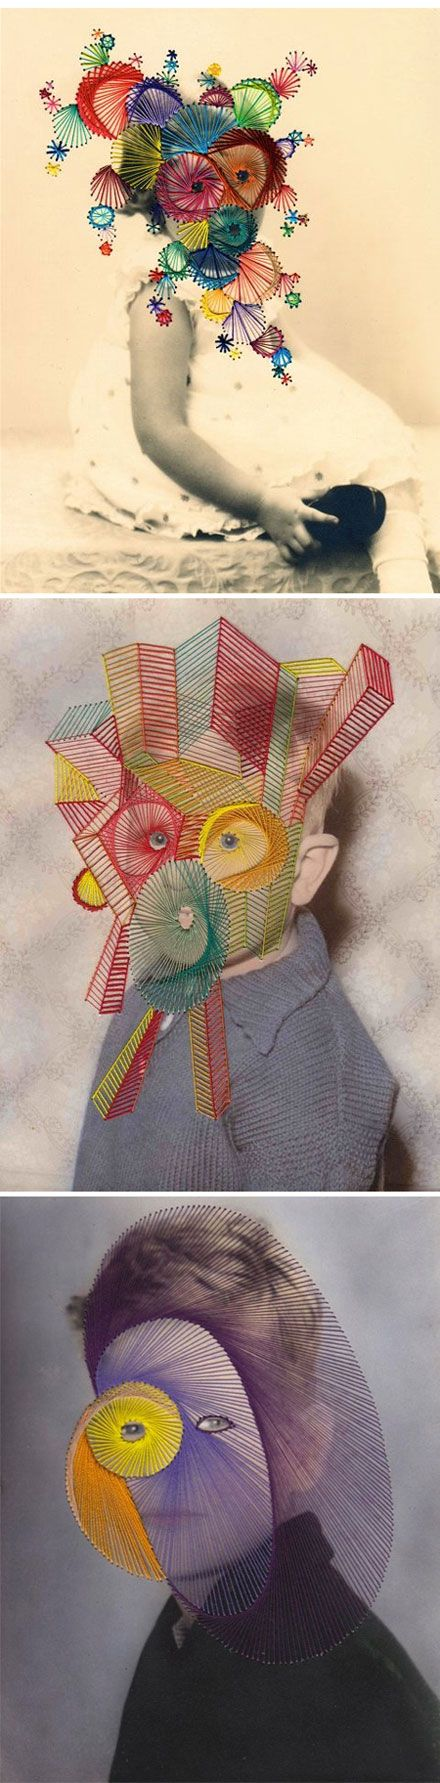 embroidered photographs... kinda weird but kinda awesome and something I think I want to try